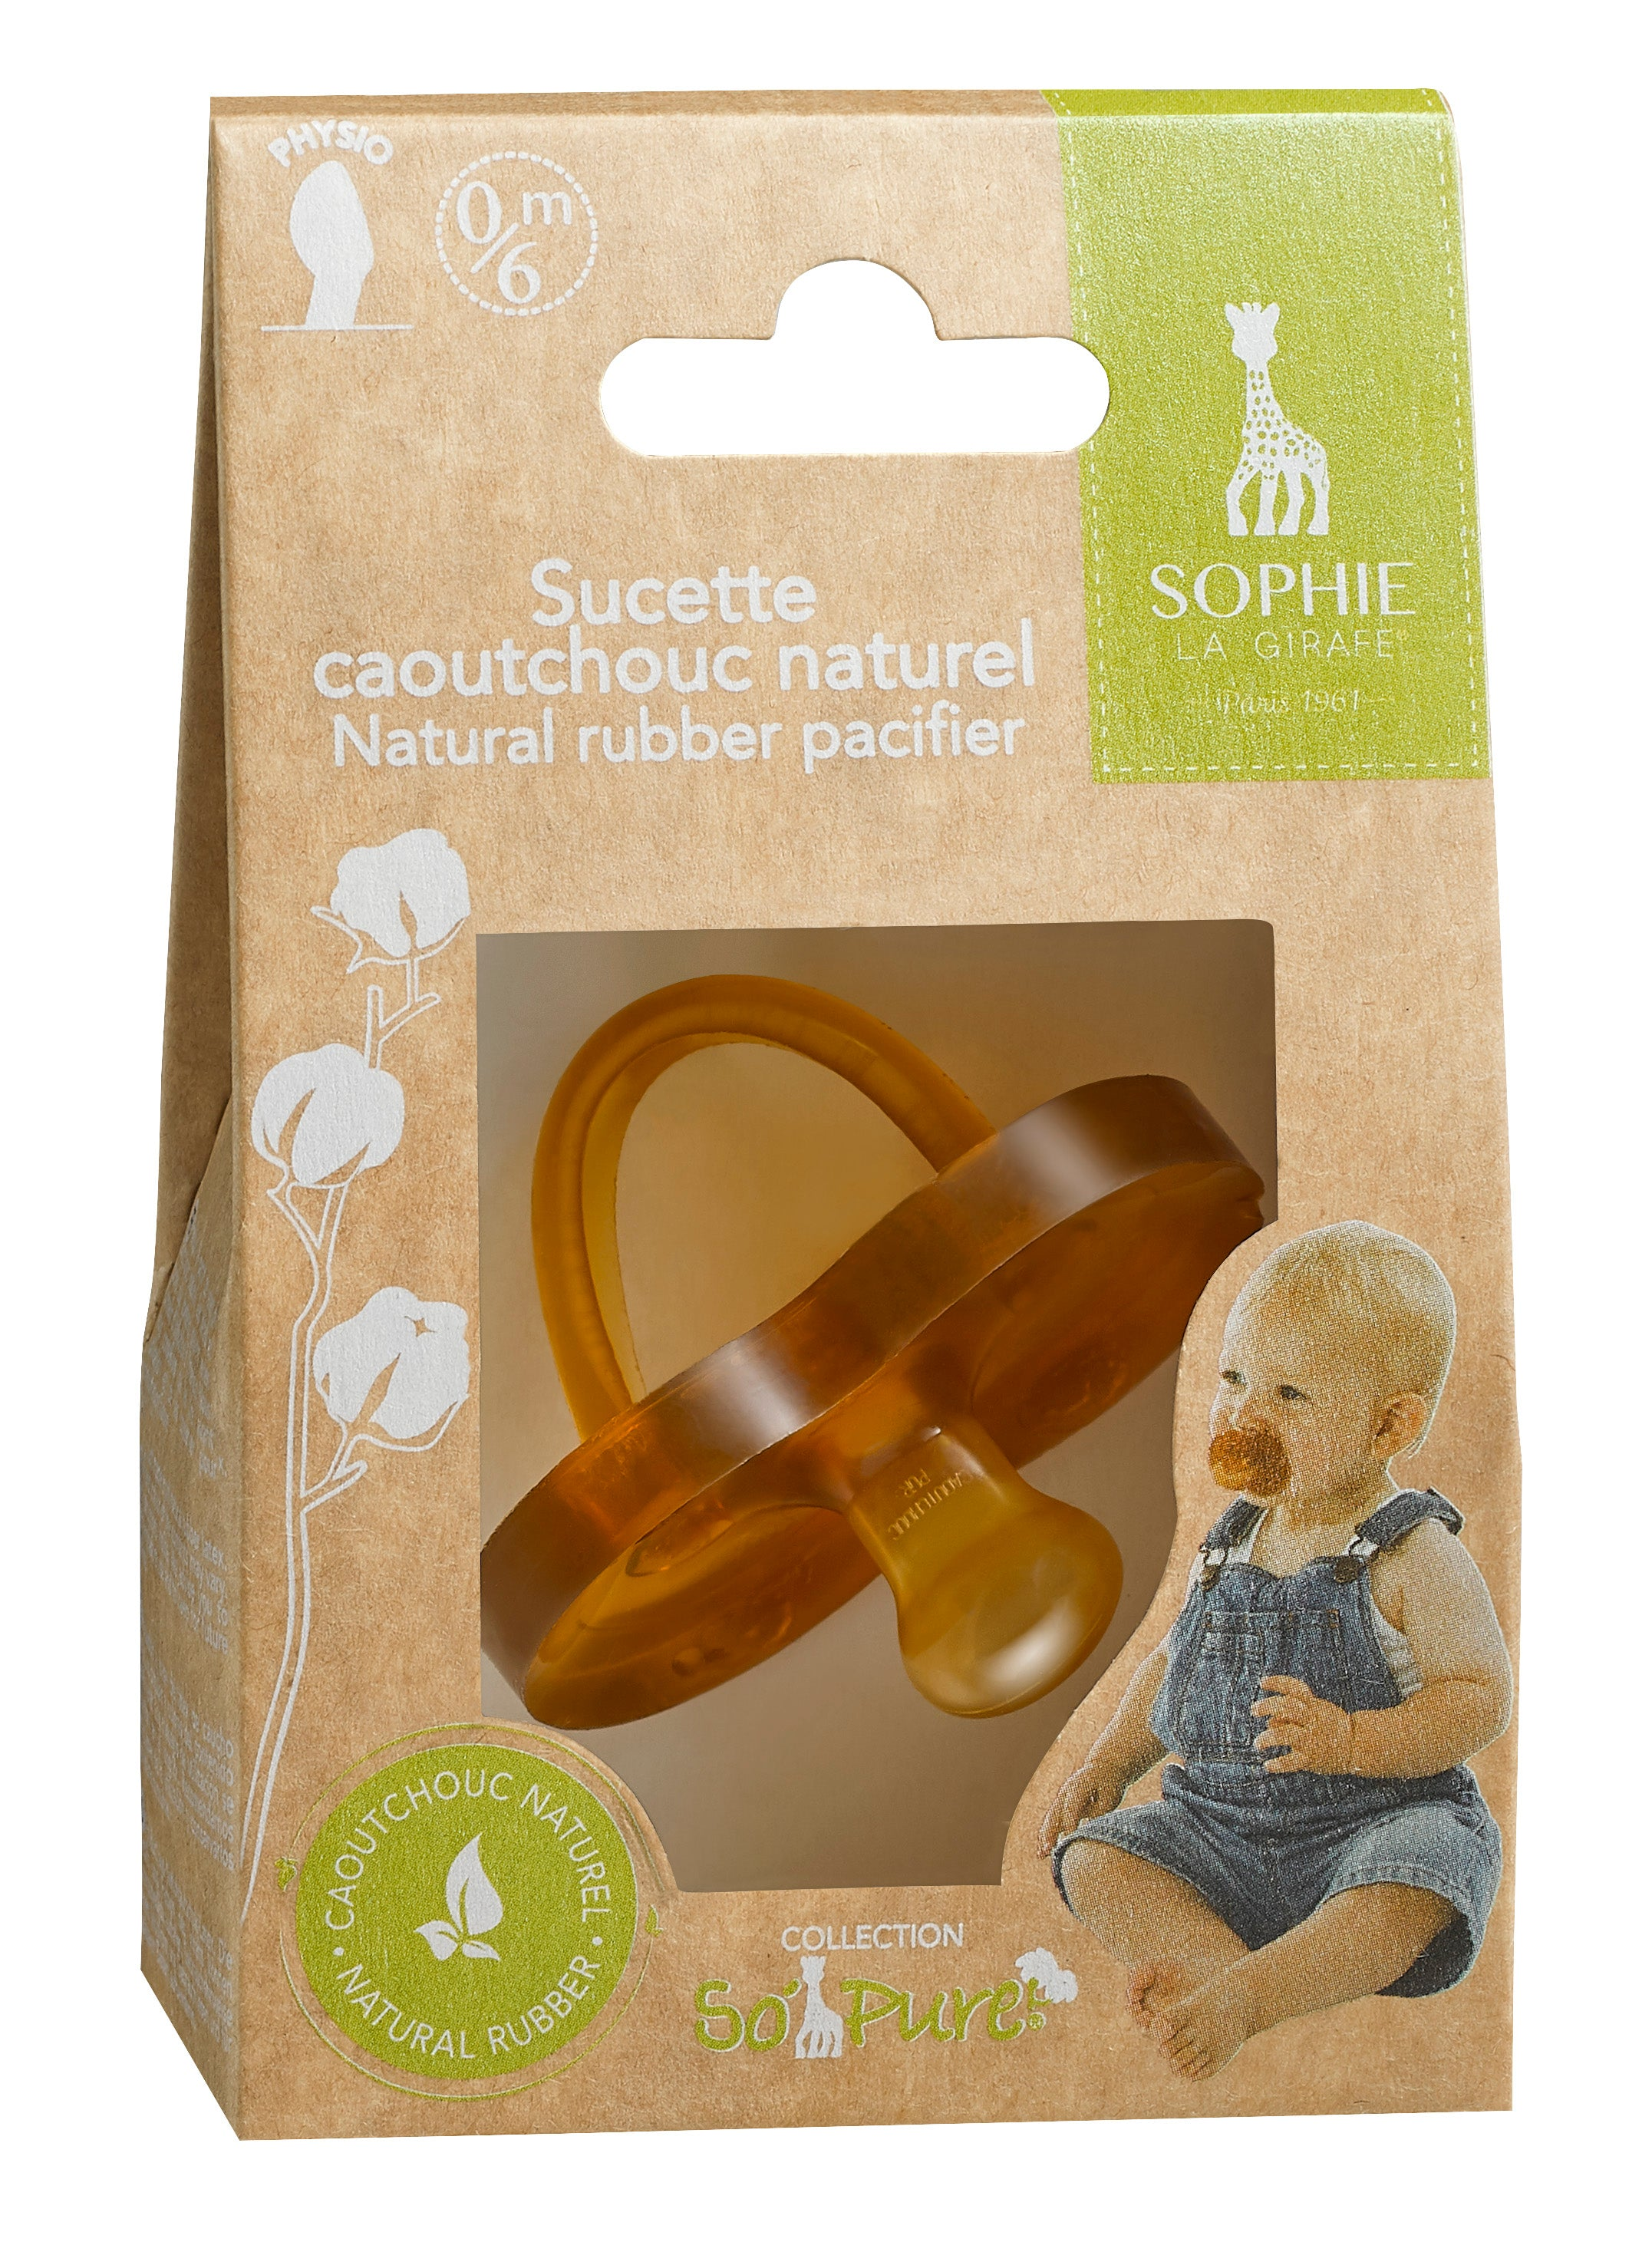 Sophie la girafe So' Pure Natural Rubber Pacifier 6-18m - The Mango Tree